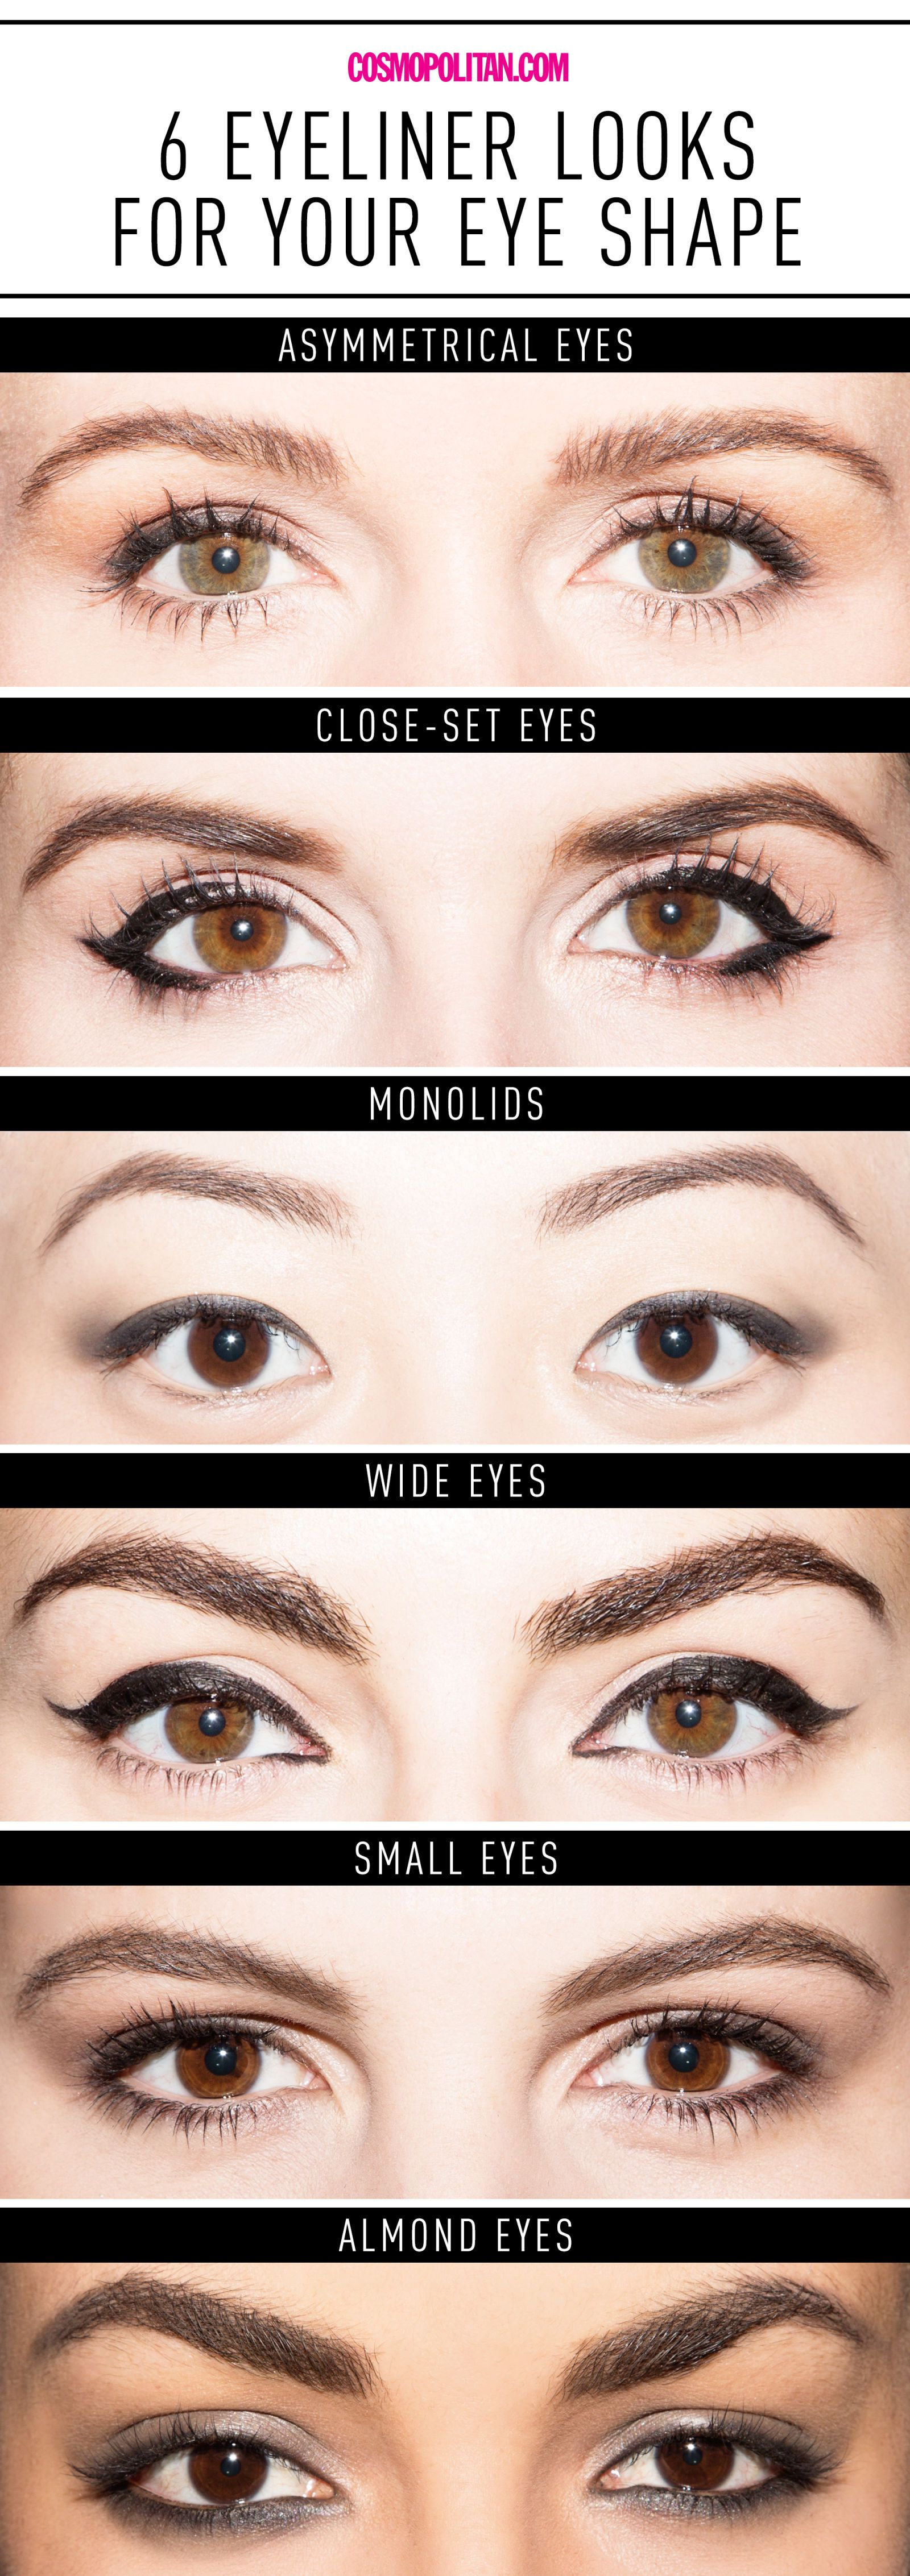 6 Ways To Get The Perfect Eyeliner For Your Eye Shape In One Handy